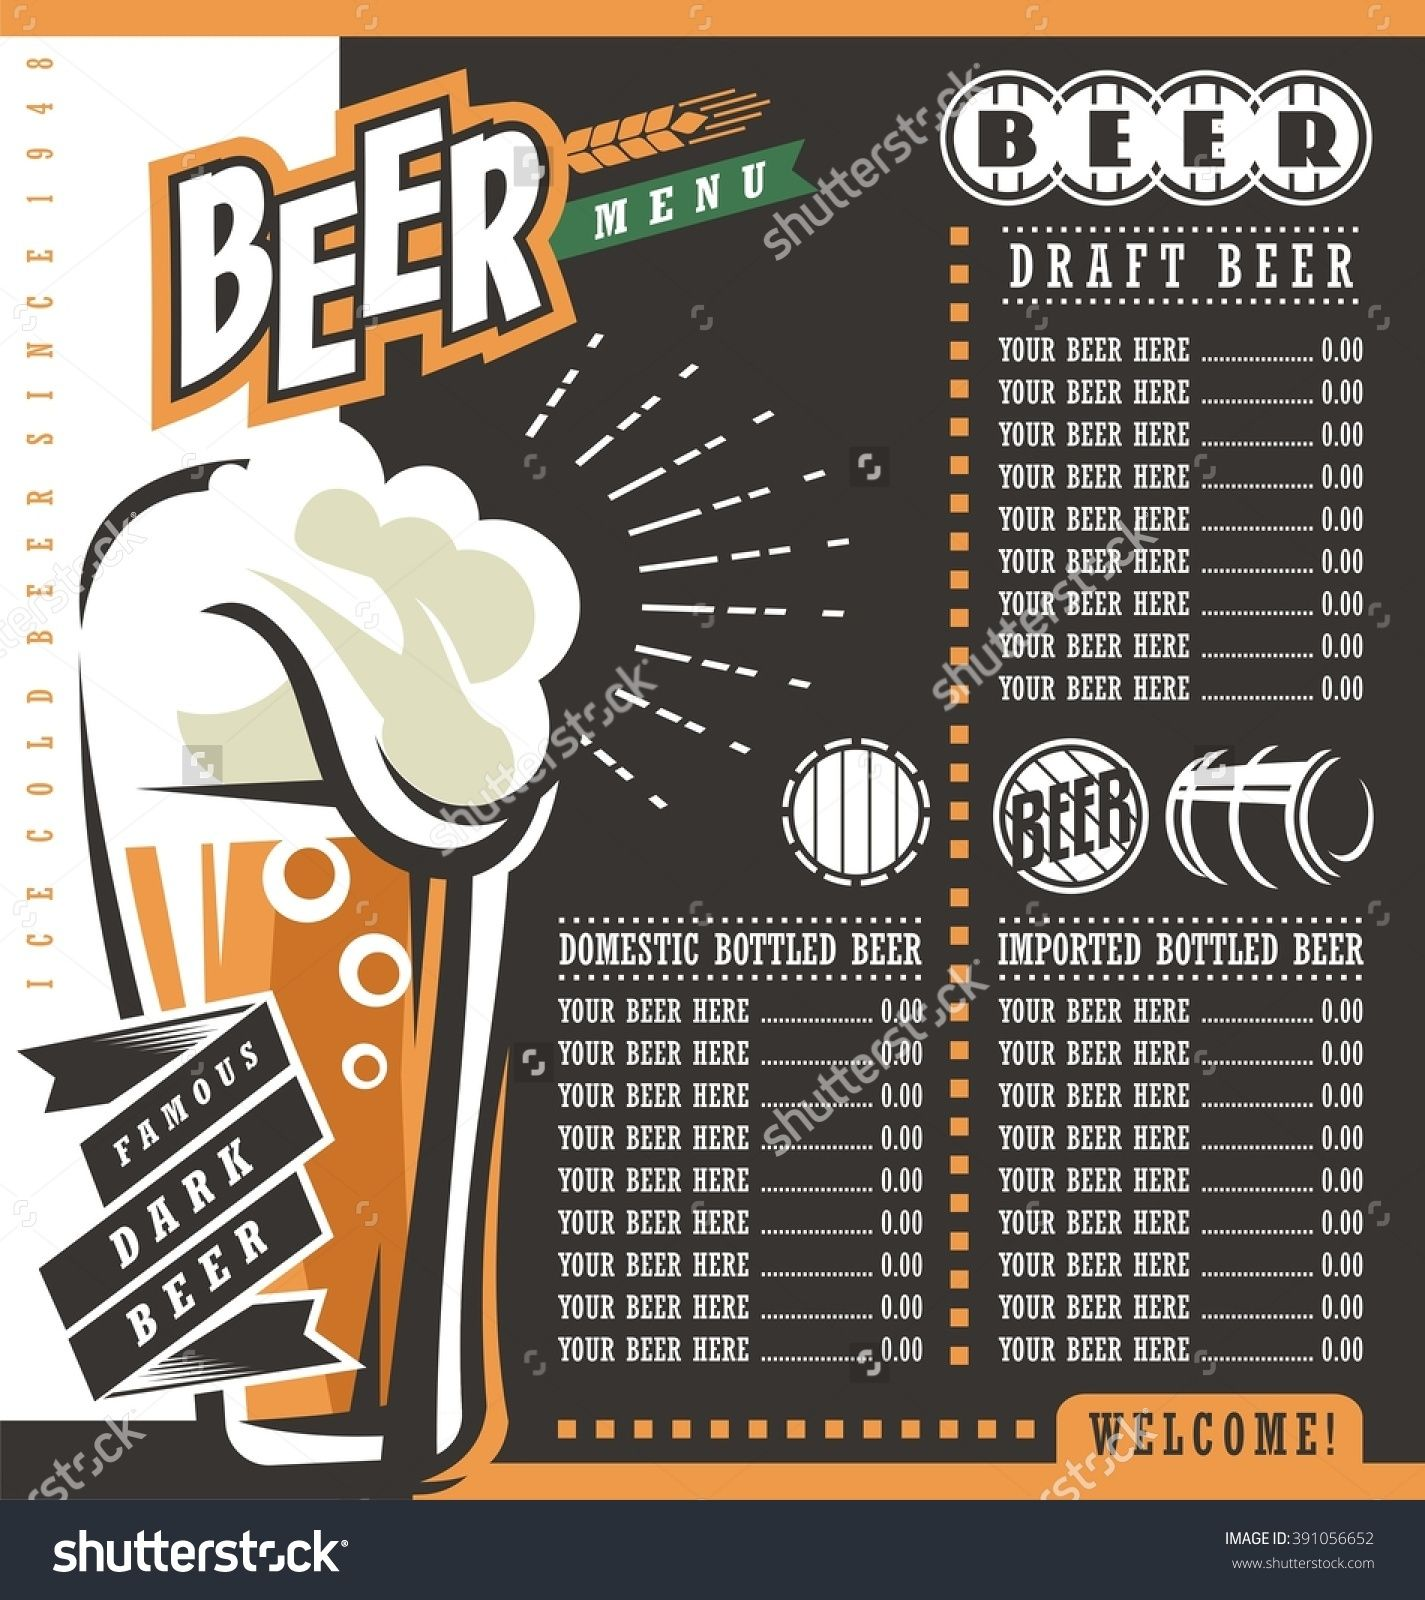 Beer Menu Retro Design Template Pub Price List With Famous Dark